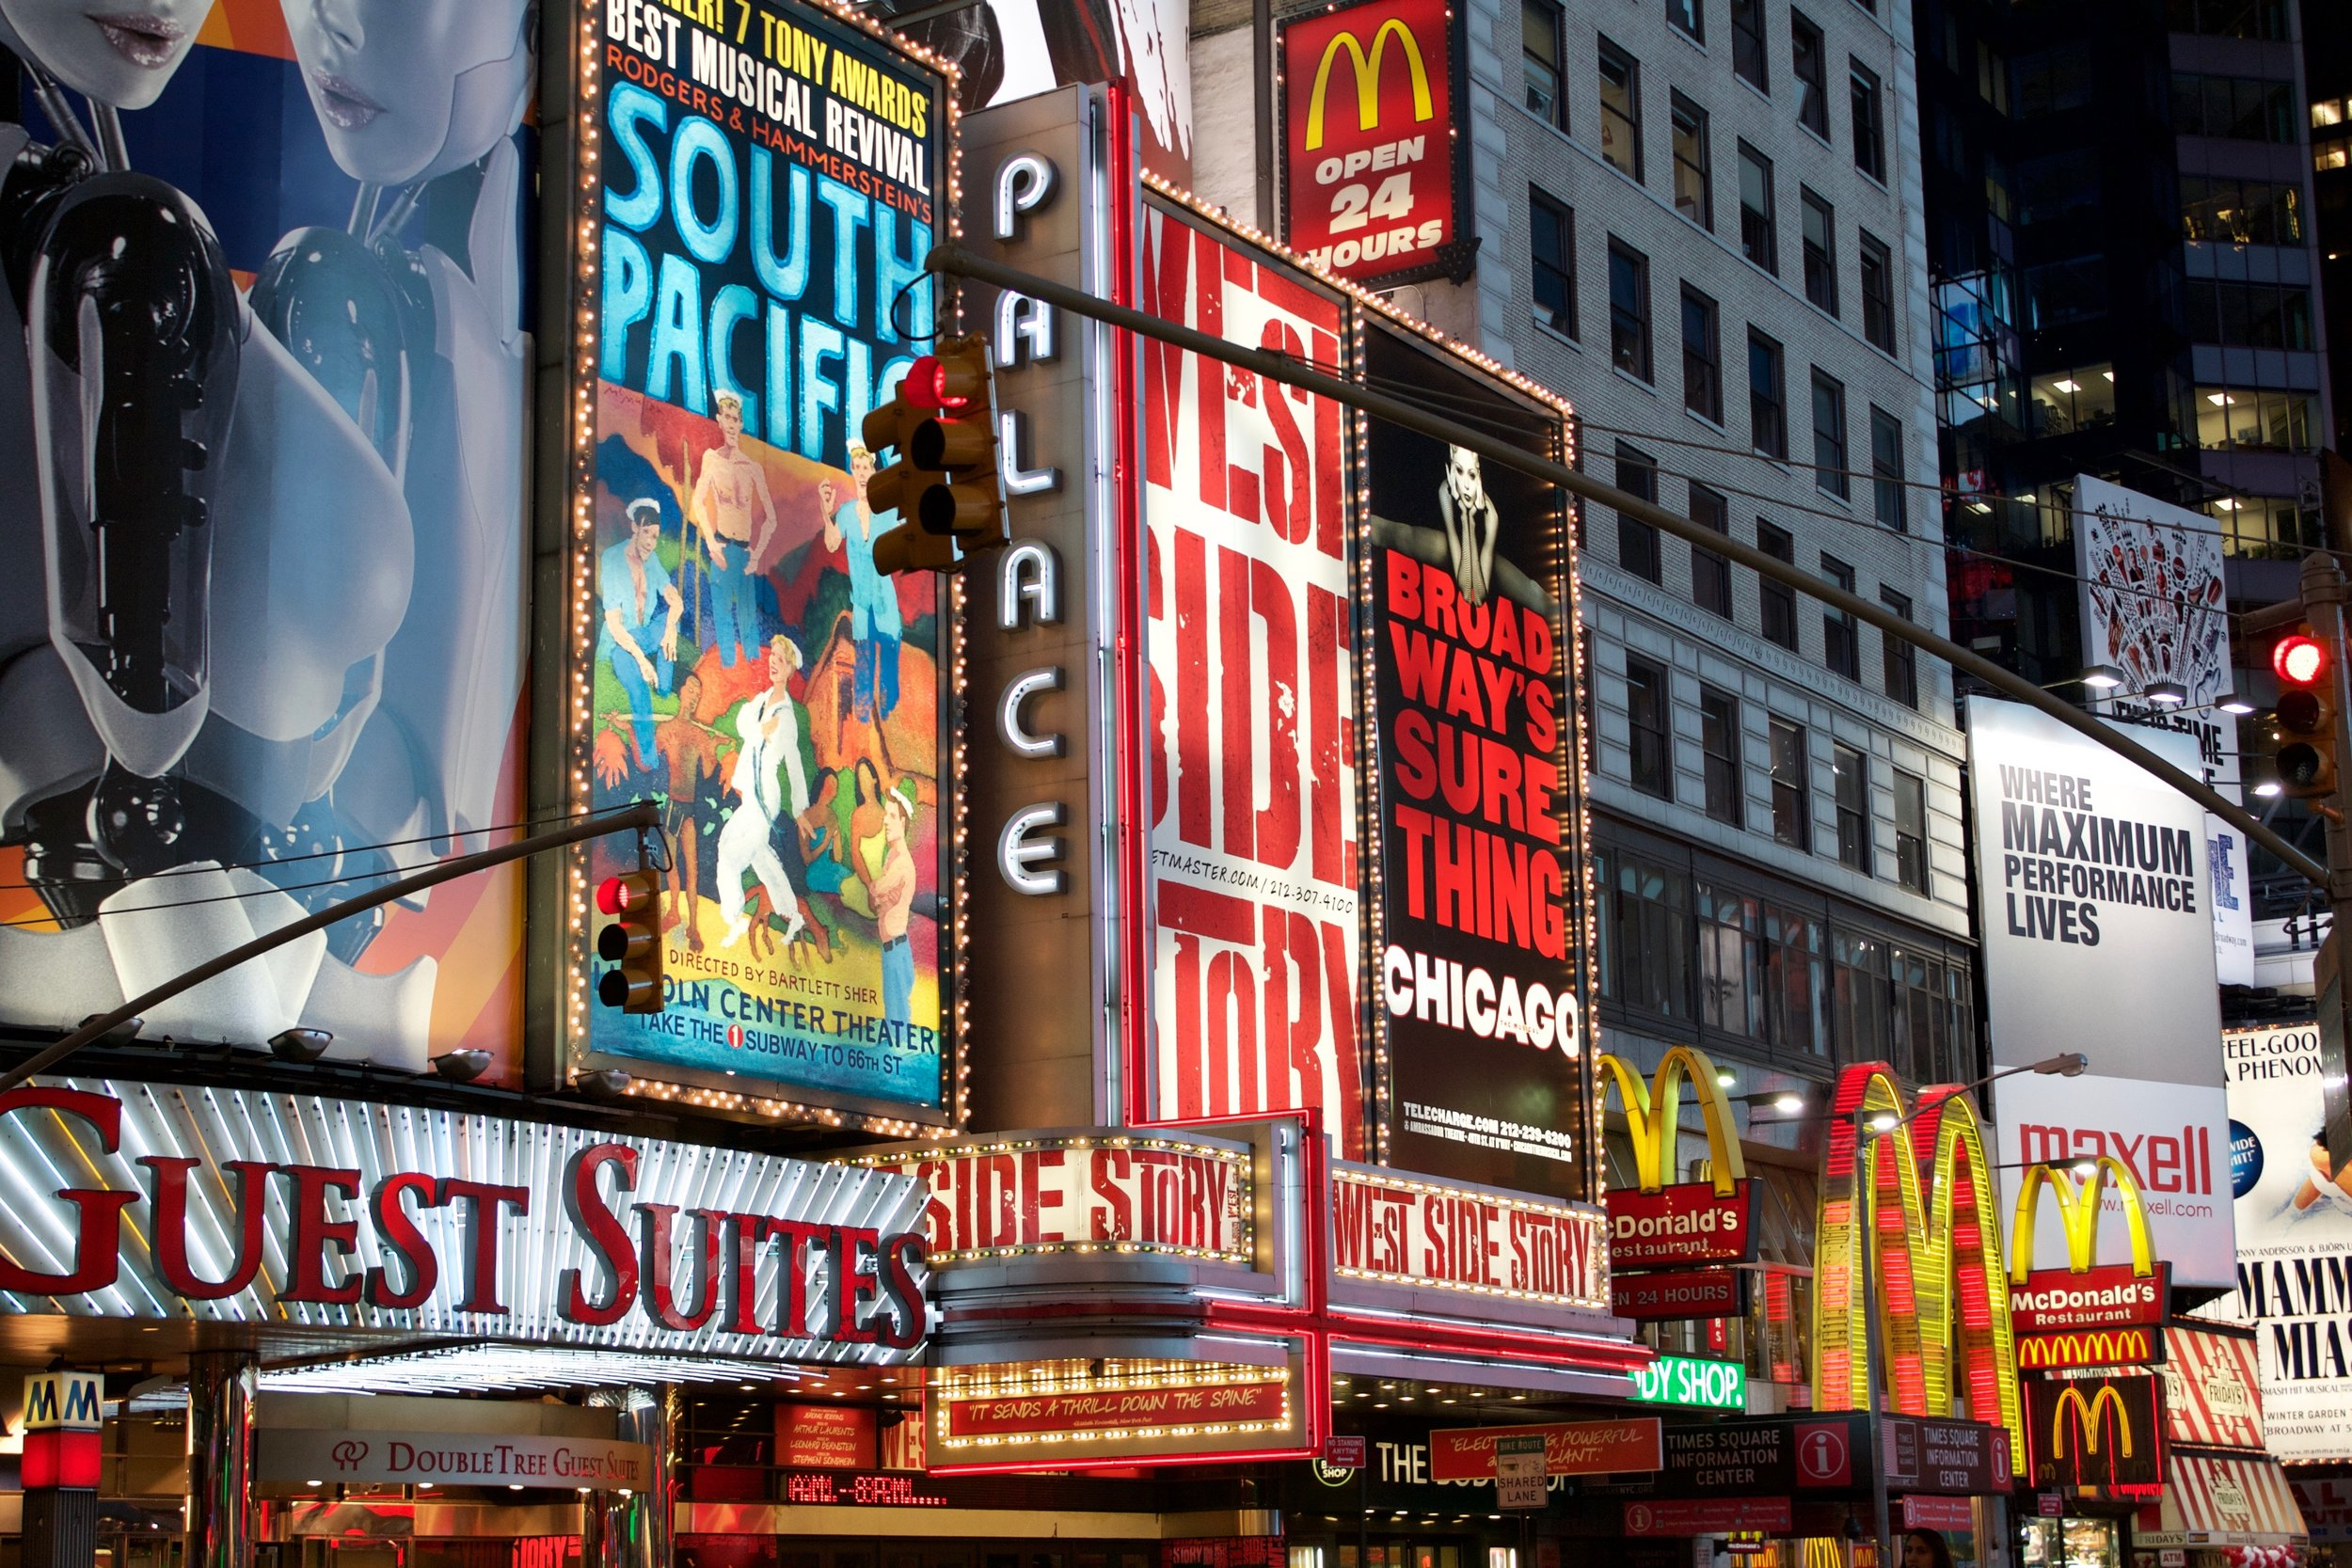 Times Square is one of the most iconic New York City outdoor sights. Don't miss it!